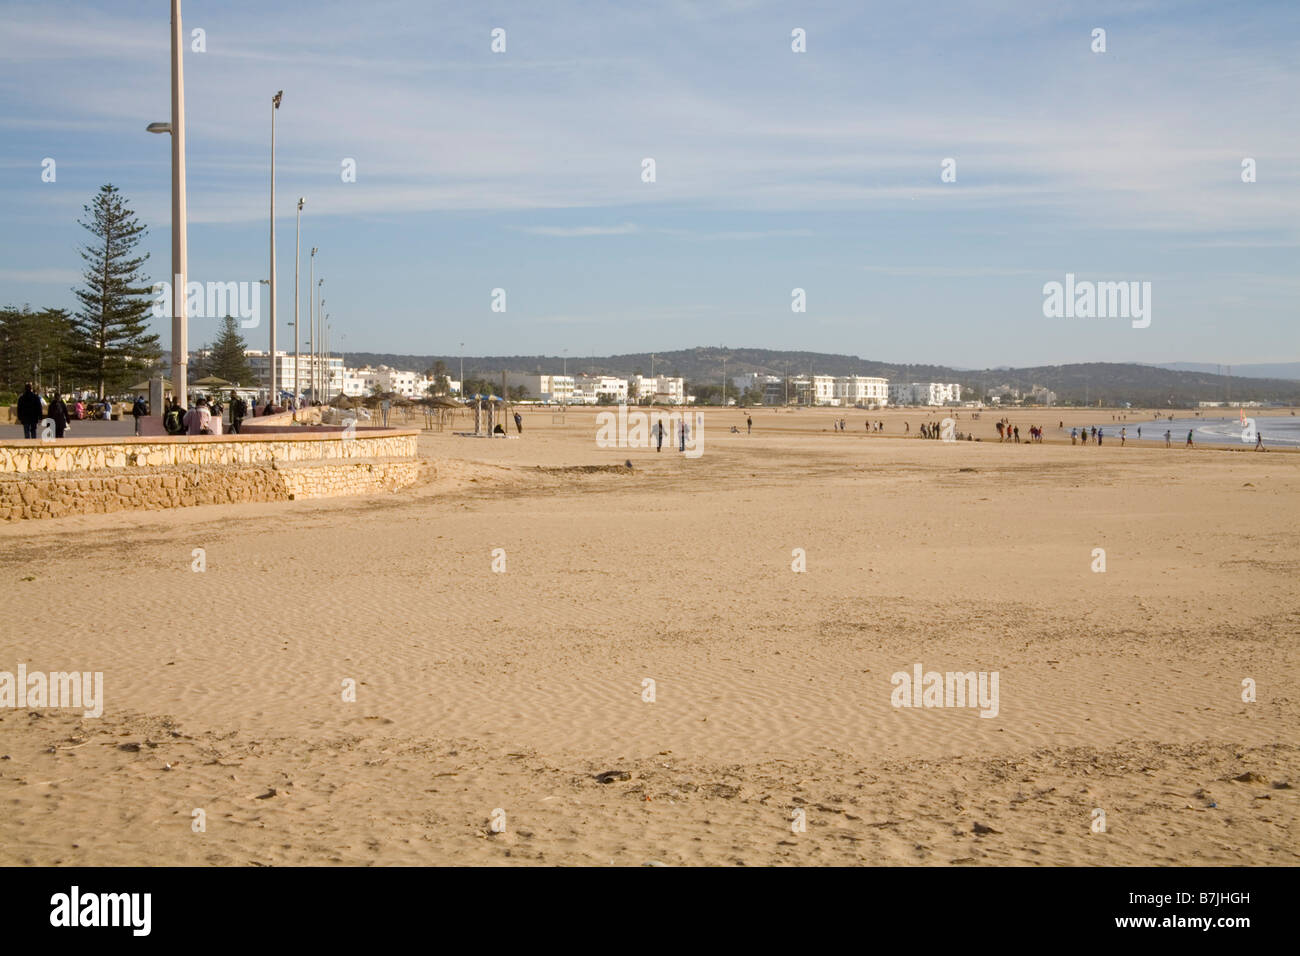 Essaouira Morocco North Africa December Looking across this popular seaside resort with visitors playing on the - Stock Image